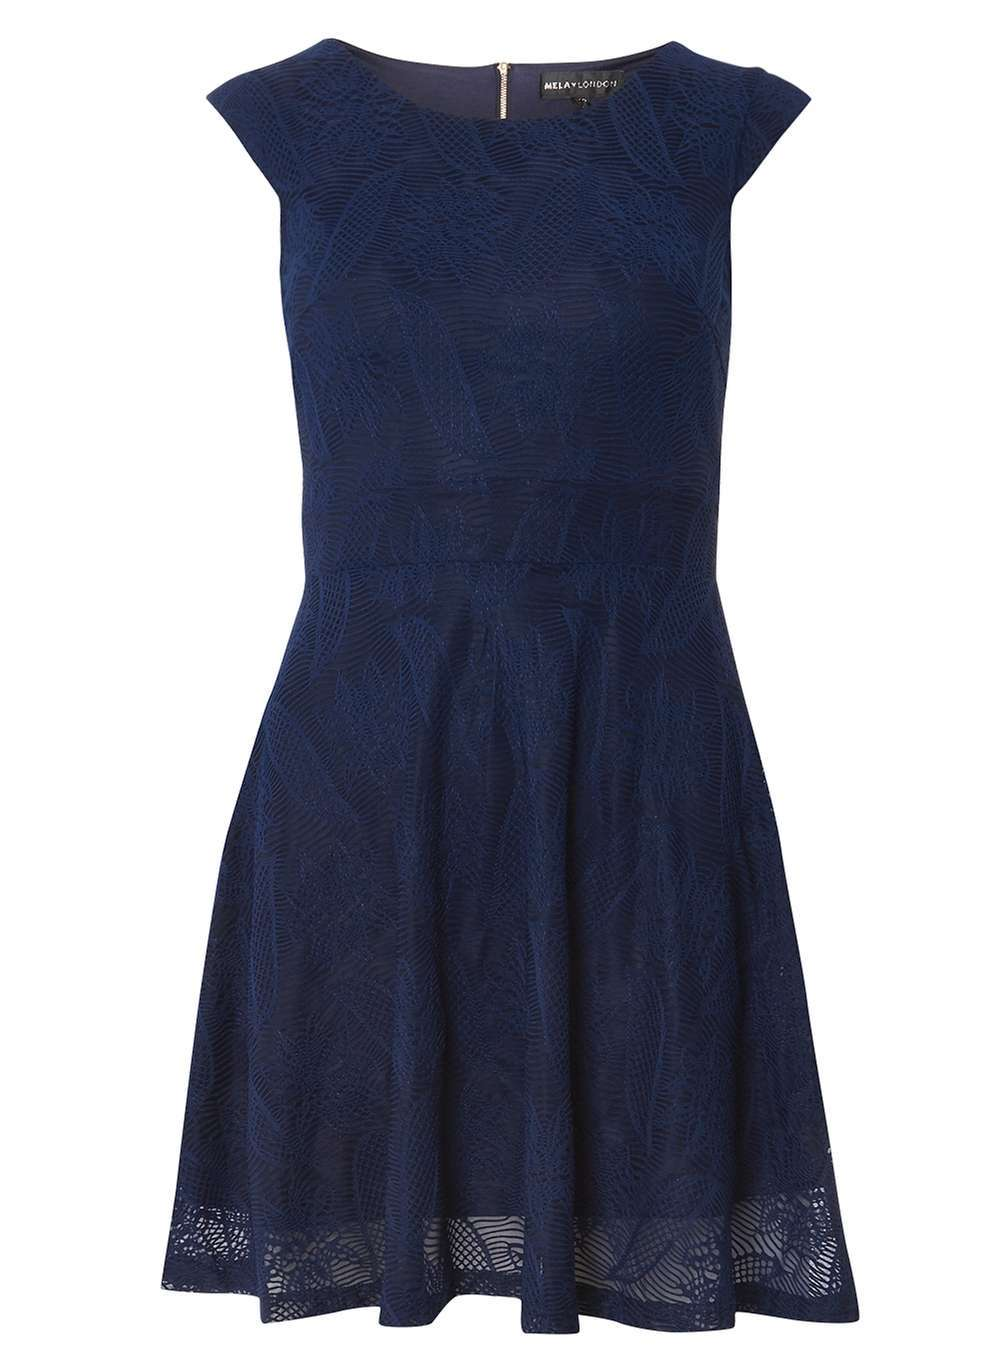 Womens **Mela Navy Lace Tie Back Dress Blue - sleeve style: capped; pattern: plain; predominant colour: navy; occasions: evening; length: just above the knee; fit: fitted at waist & bust; style: fit & flare; fibres: polyester/polyamide - stretch; neckline: crew; sleeve length: short sleeve; pattern type: fabric; texture group: jersey - stretchy/drapey; season: a/w 2016; wardrobe: event